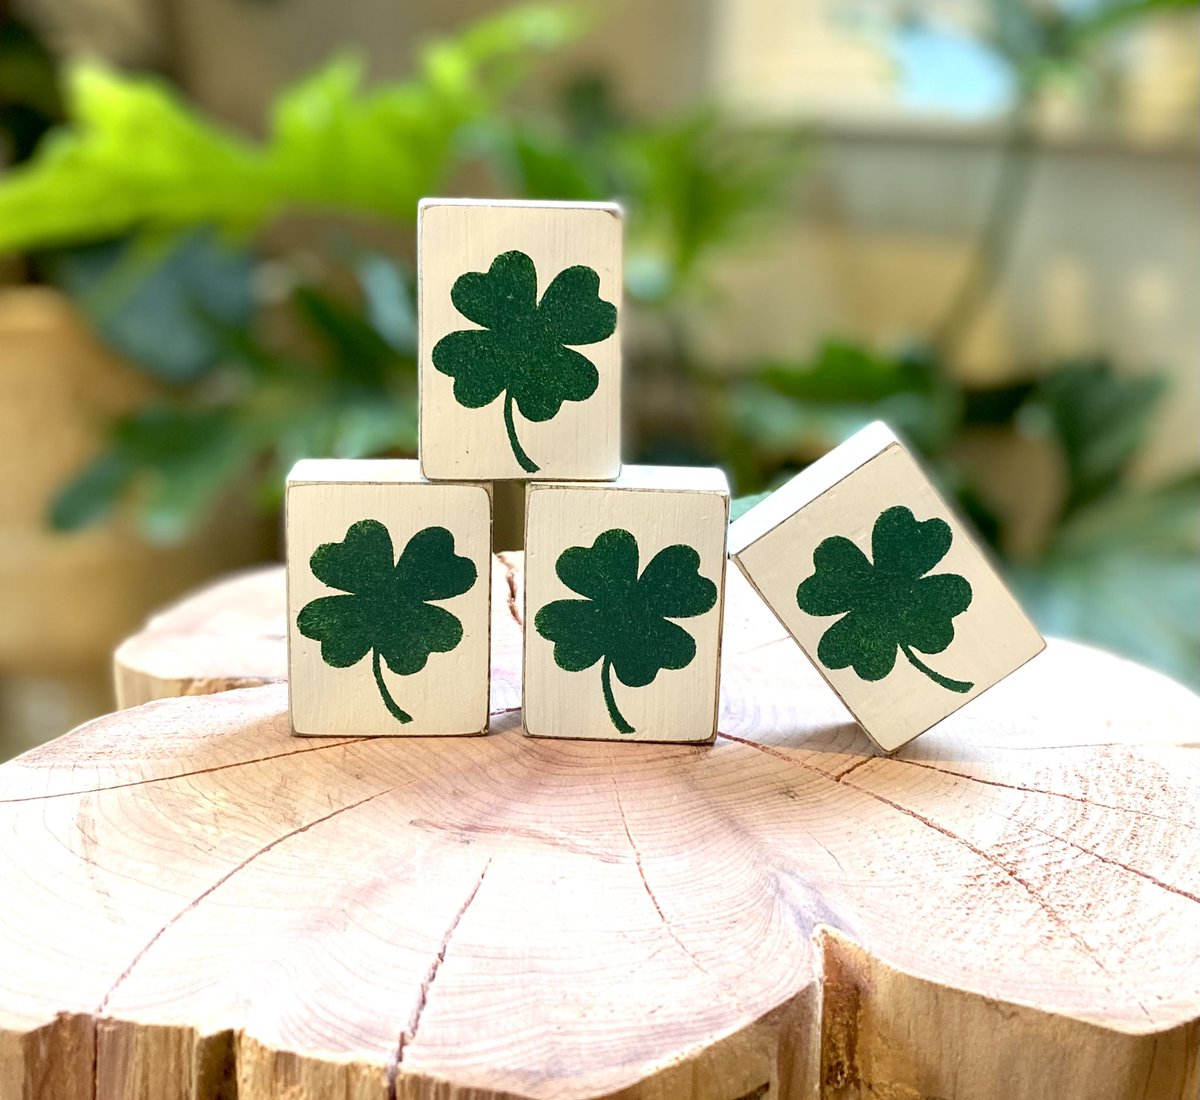 I'm in 💚 with the richness of this green 🍀! #StPatricksDay #stpattysday #green #shamrock #lucky #luckycharm #stpatricksdaydecor #woodworking #woodsign #rusticdecor #interiordesign #interiordecor #handmade #MothersDay #cabindecor #countrydecor #etsy #ct #supportsmall #etsyshop